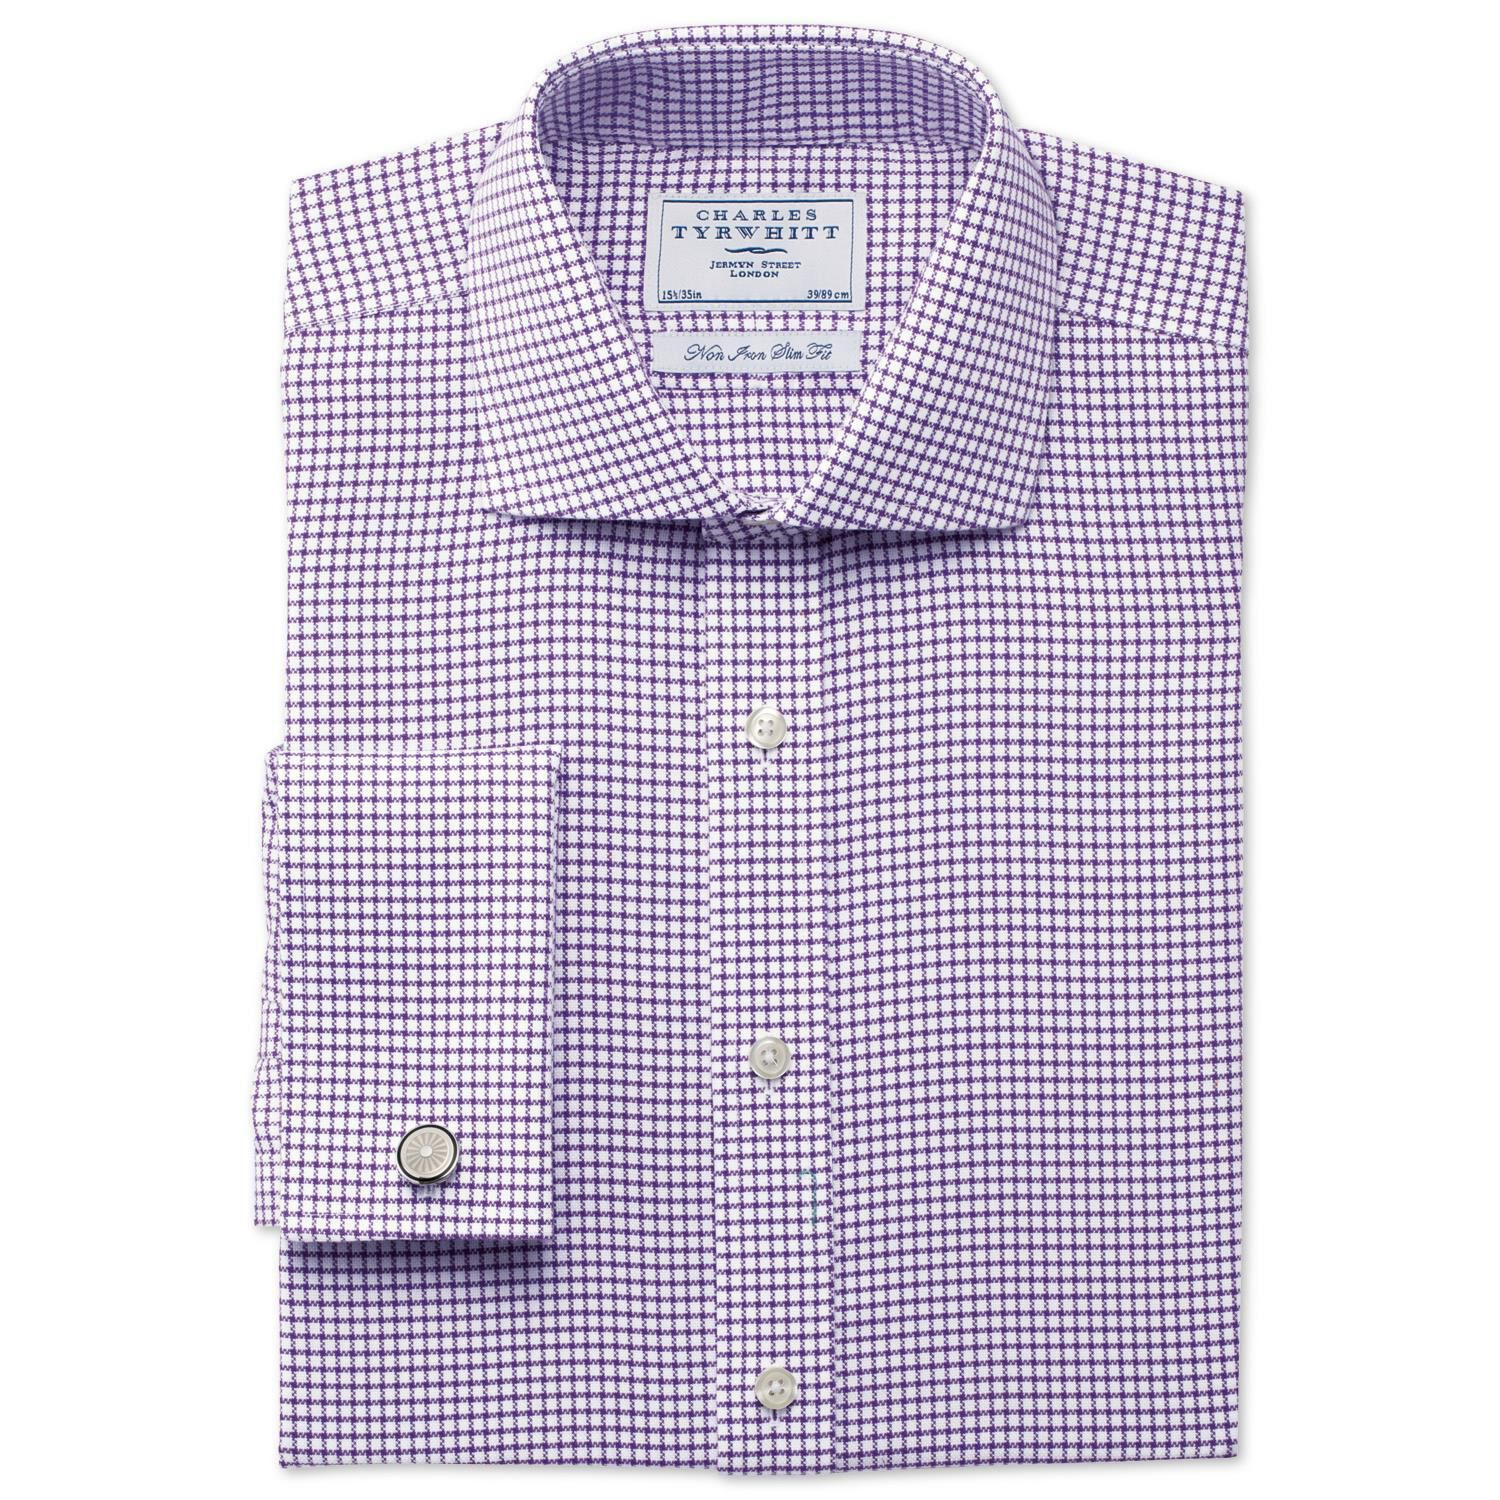 Charles Tyrwhitt Slim Fit Non-Iron Cutaway Collar Basketweave Check Purple Cotton Formal Shirt Size